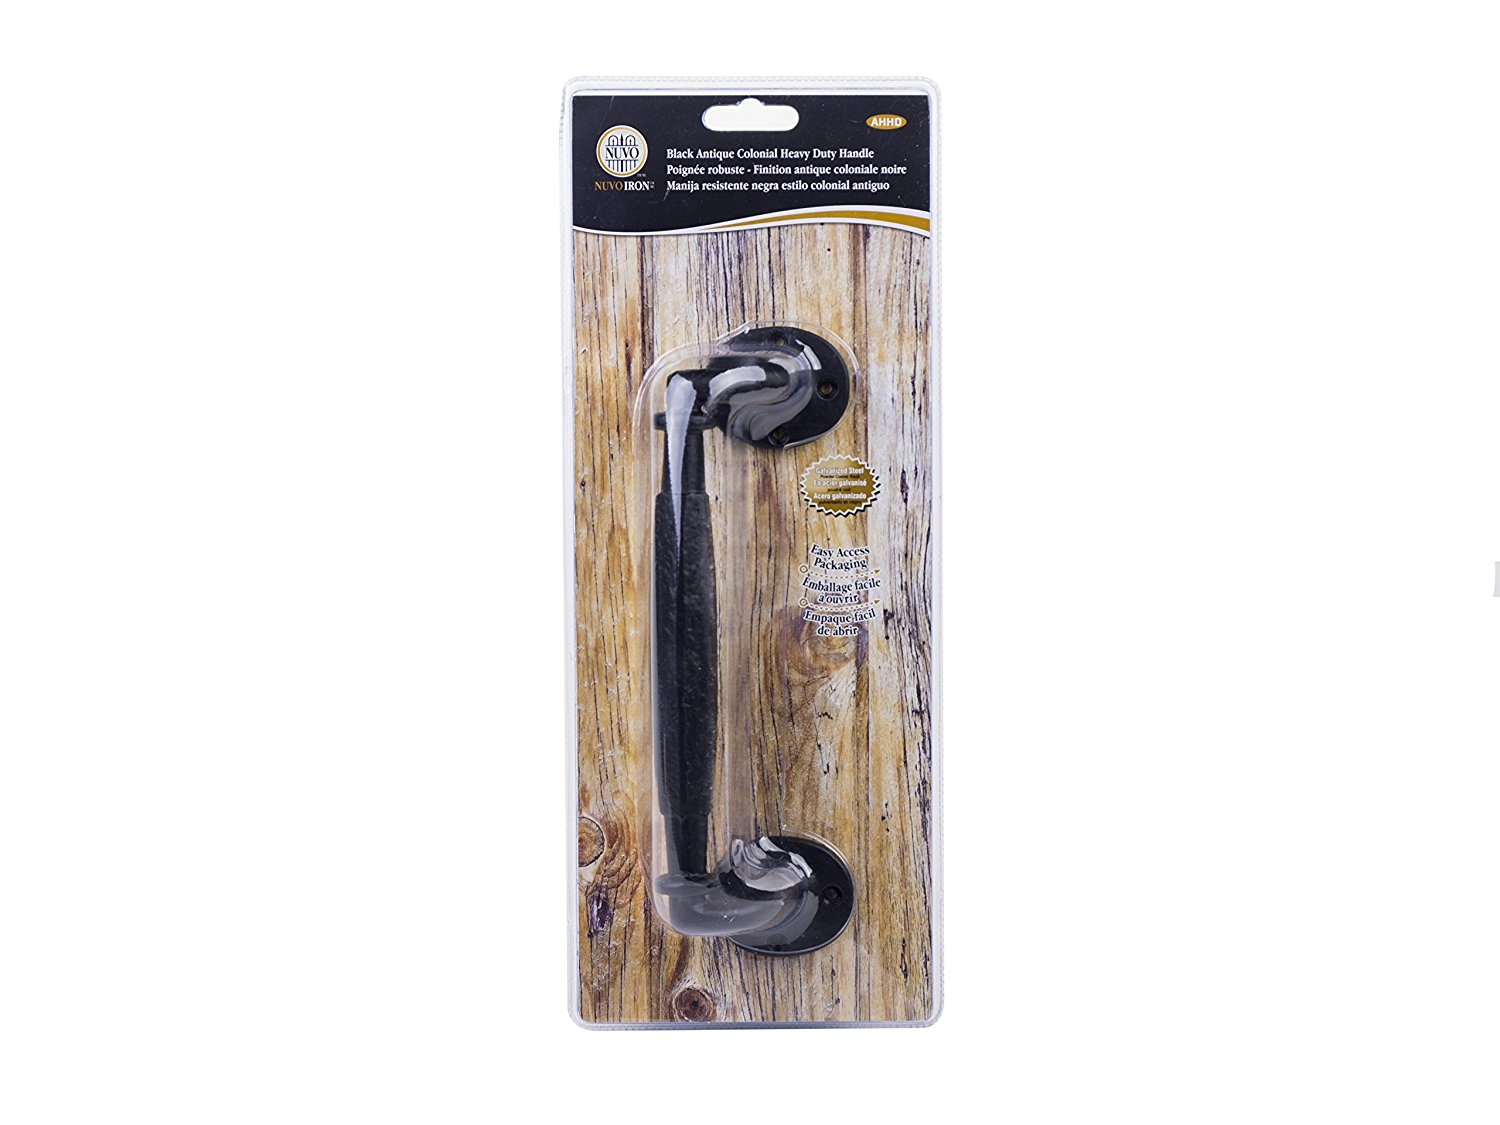 Nuvo Iron Antique Look Colonial Heavy Duty Handle Designed for Wood Doors, Gates, Sheds - Black